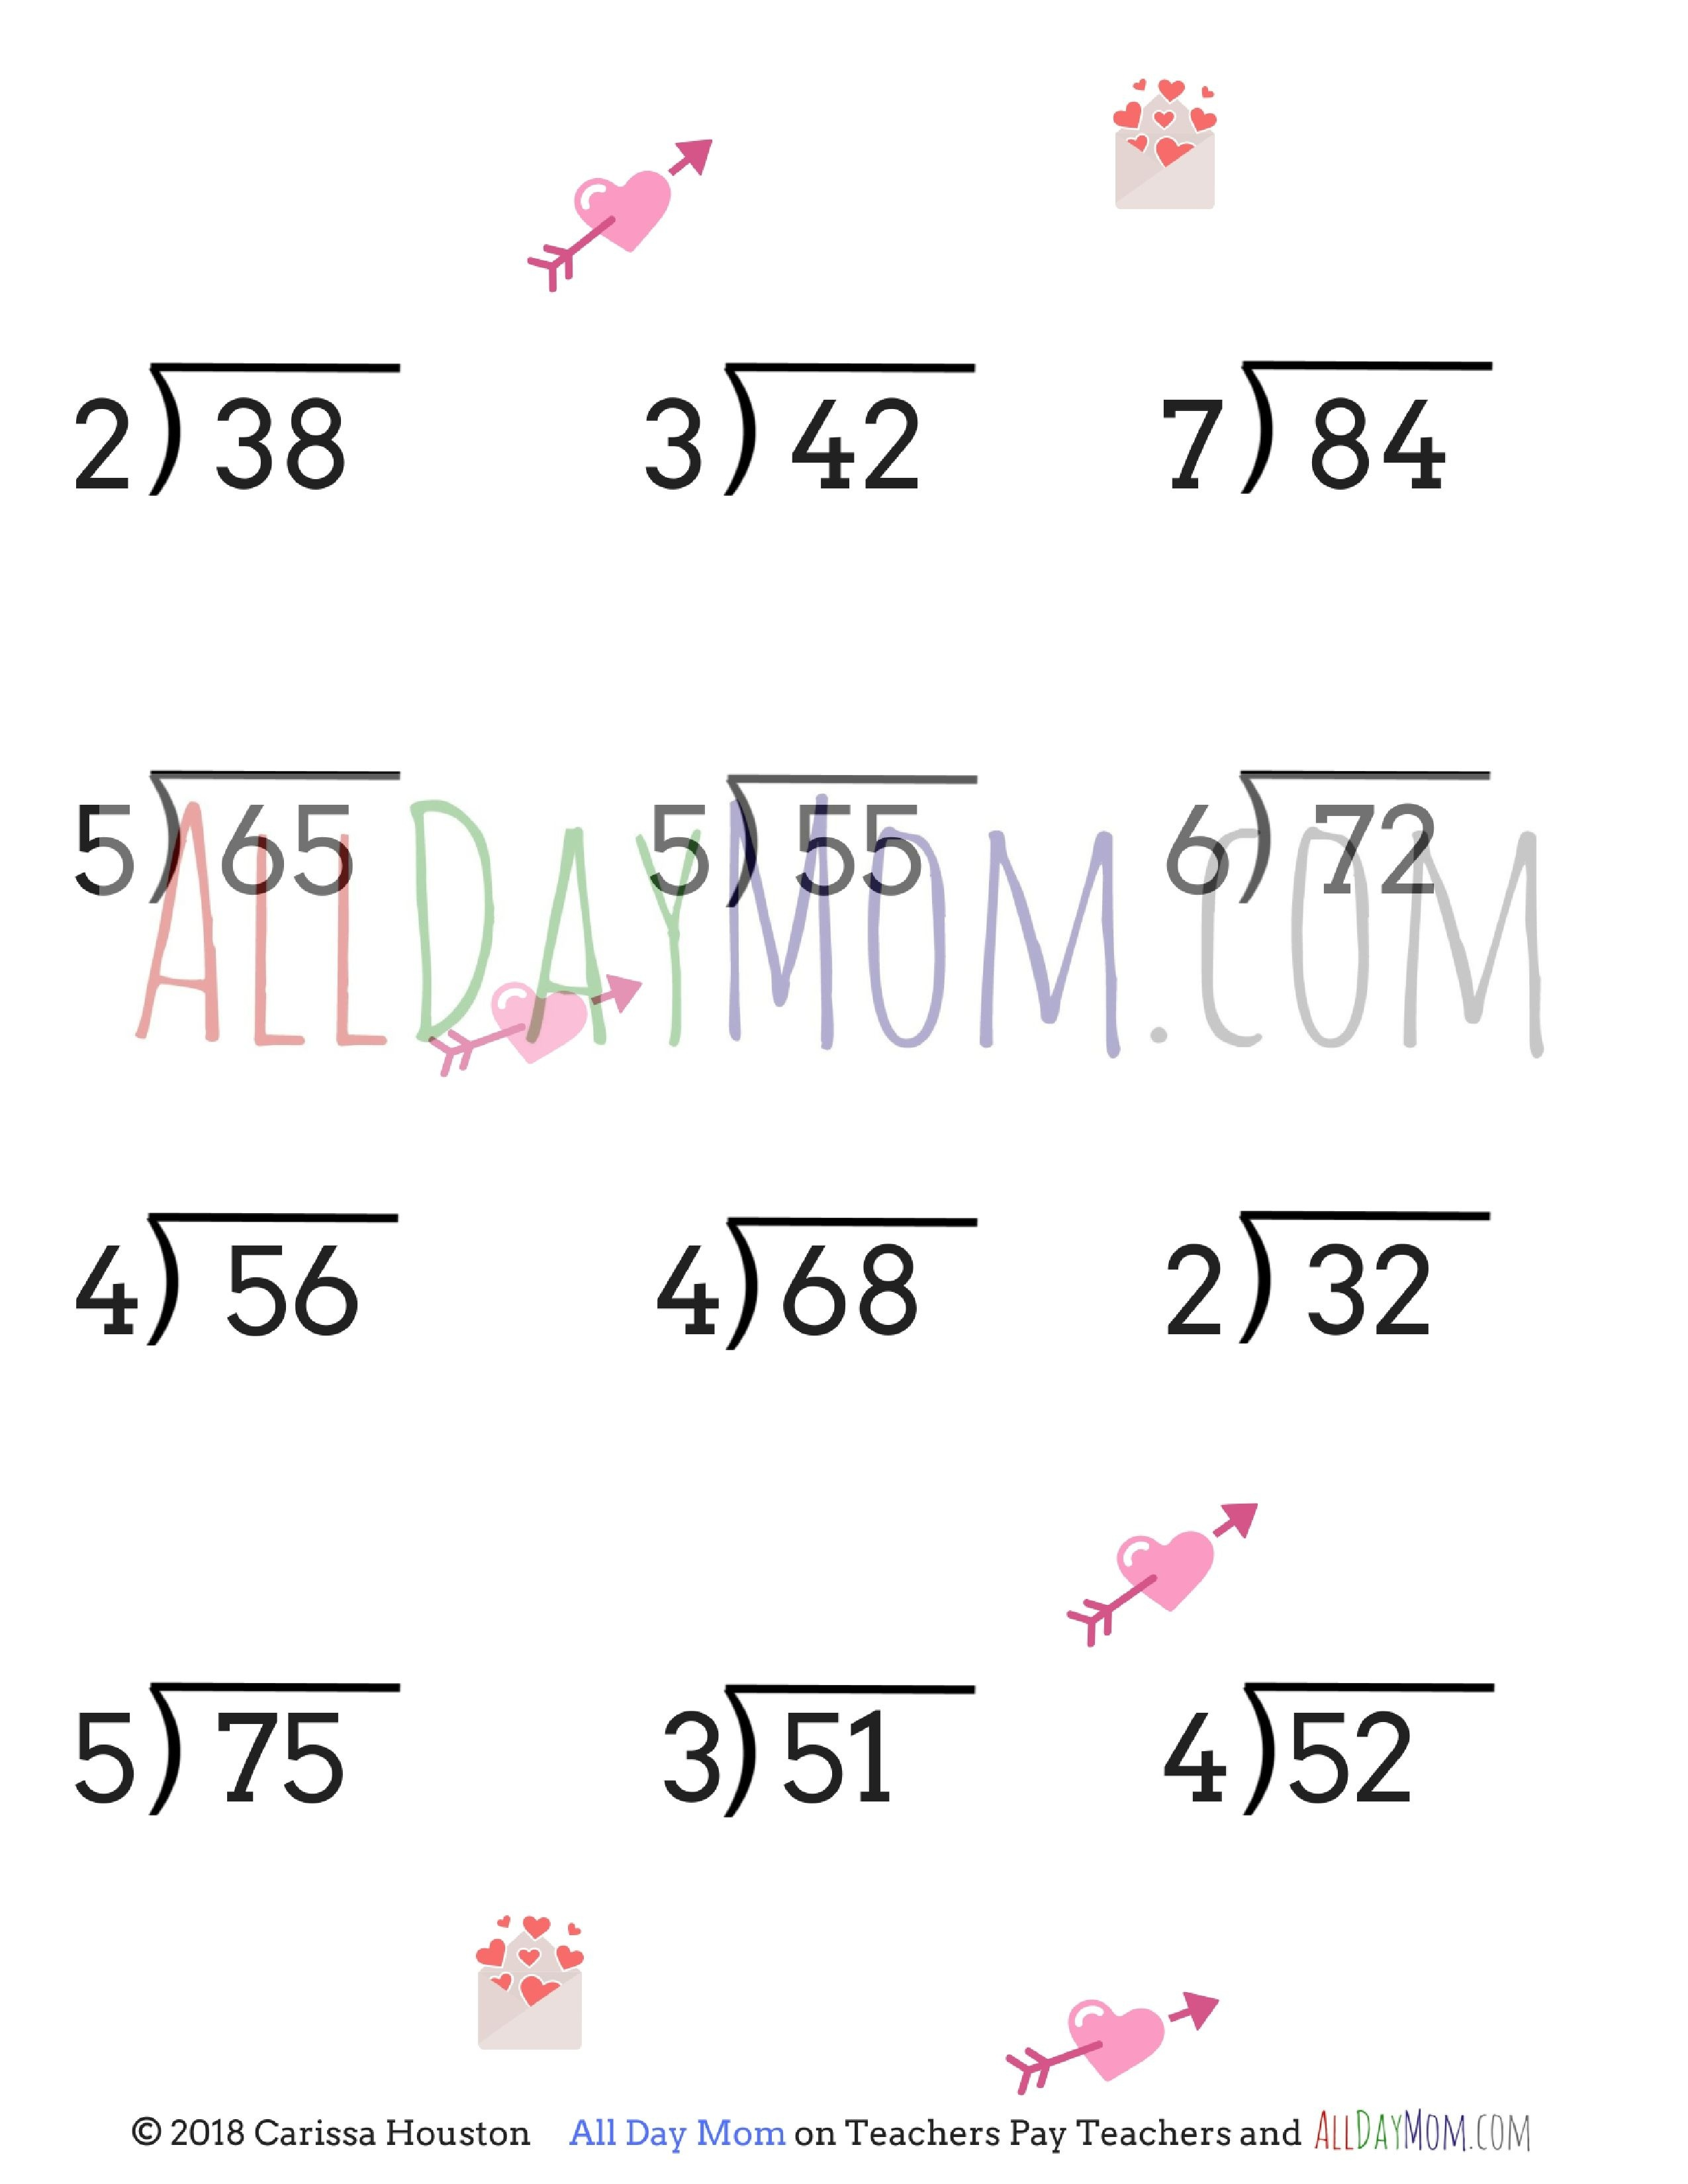 Free Printable Valentine's Day Math Worksheets! | Homeschool Math - Free Printable Division Worksheets For 5Th Grade